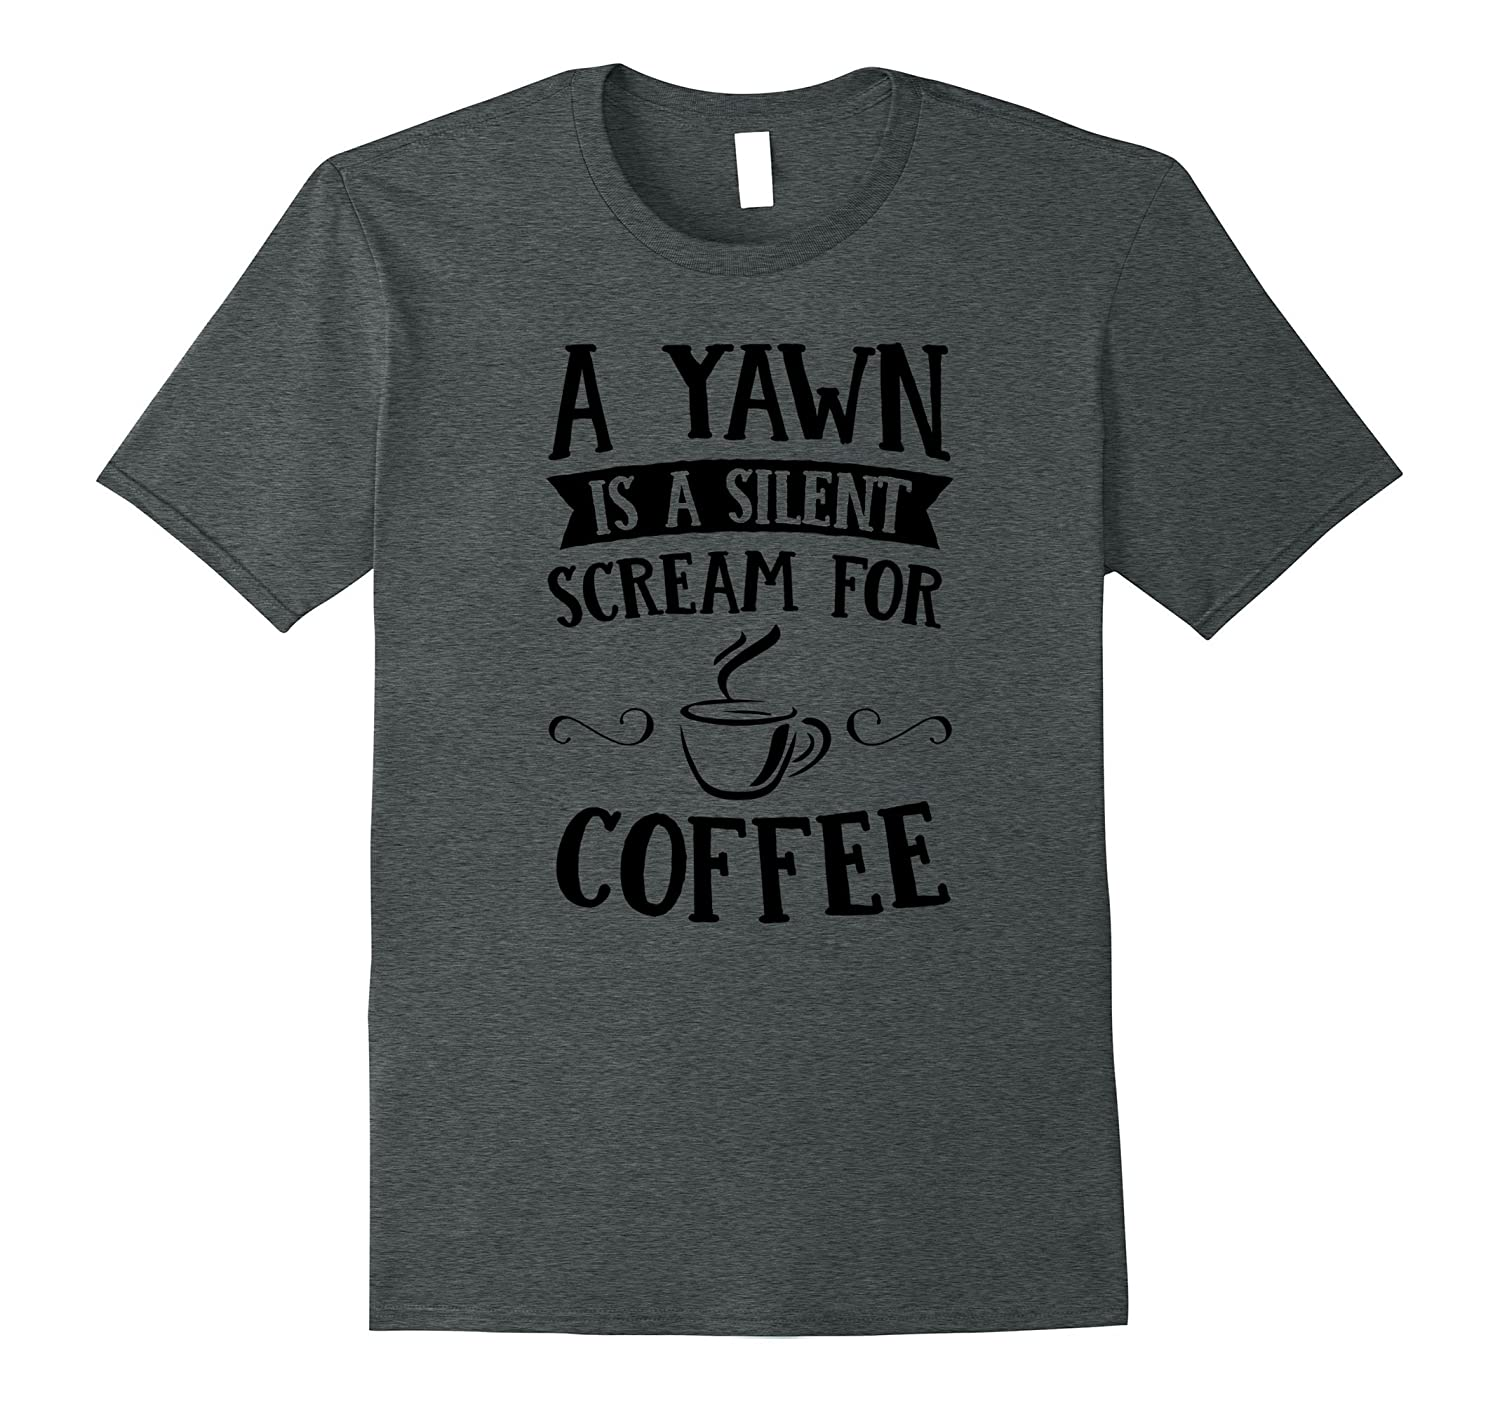 A Yawn Is A Silent Scream for Coffee T-Shirt for Men Women-Vaci